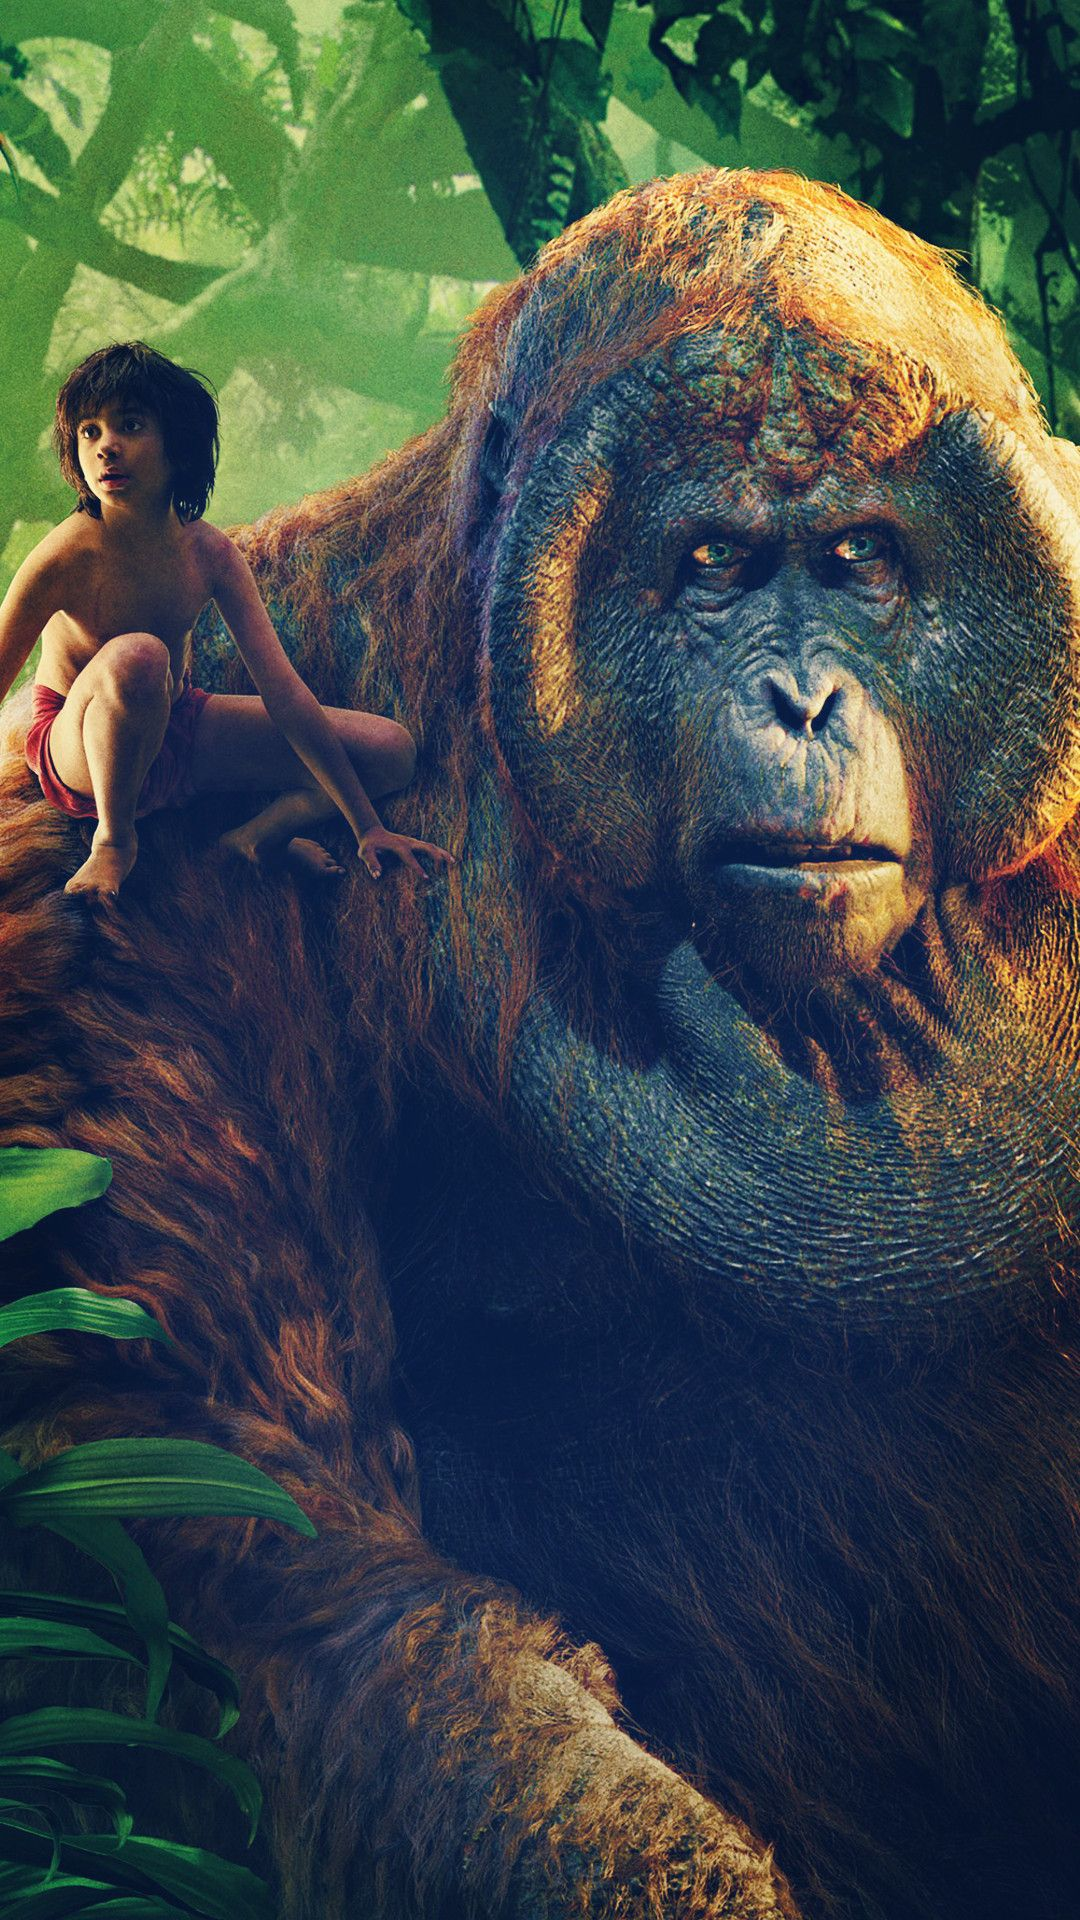 The Jungle Book Movie Wallpapers For Iphone Apple Lives